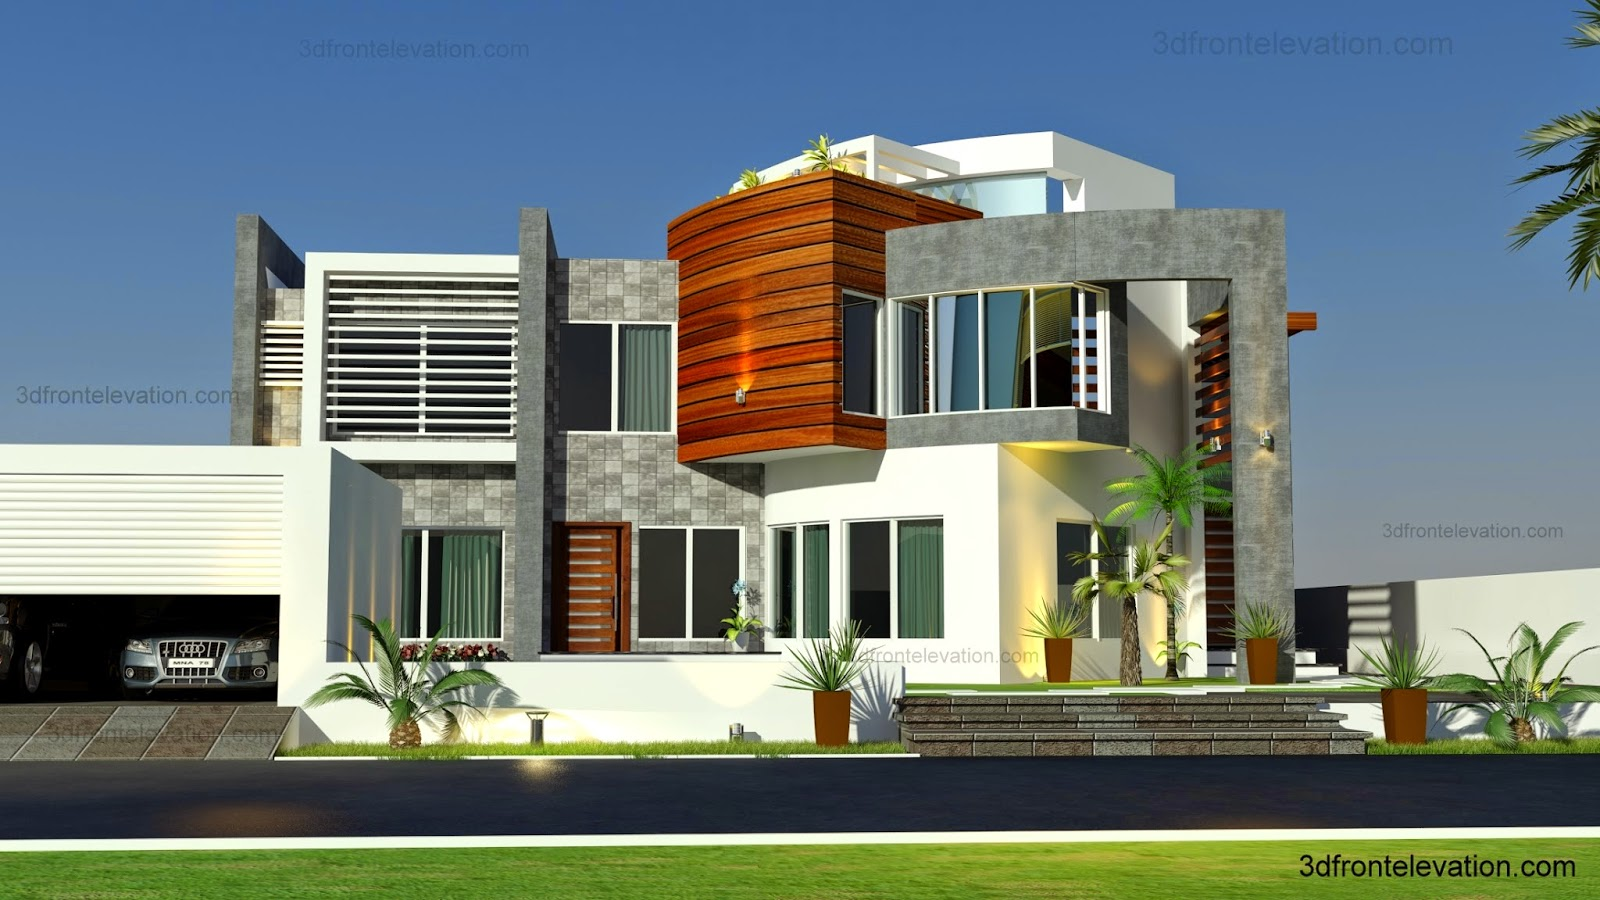 3D Front Elevation.com: Oman Modern Contemporary villa 3D ...